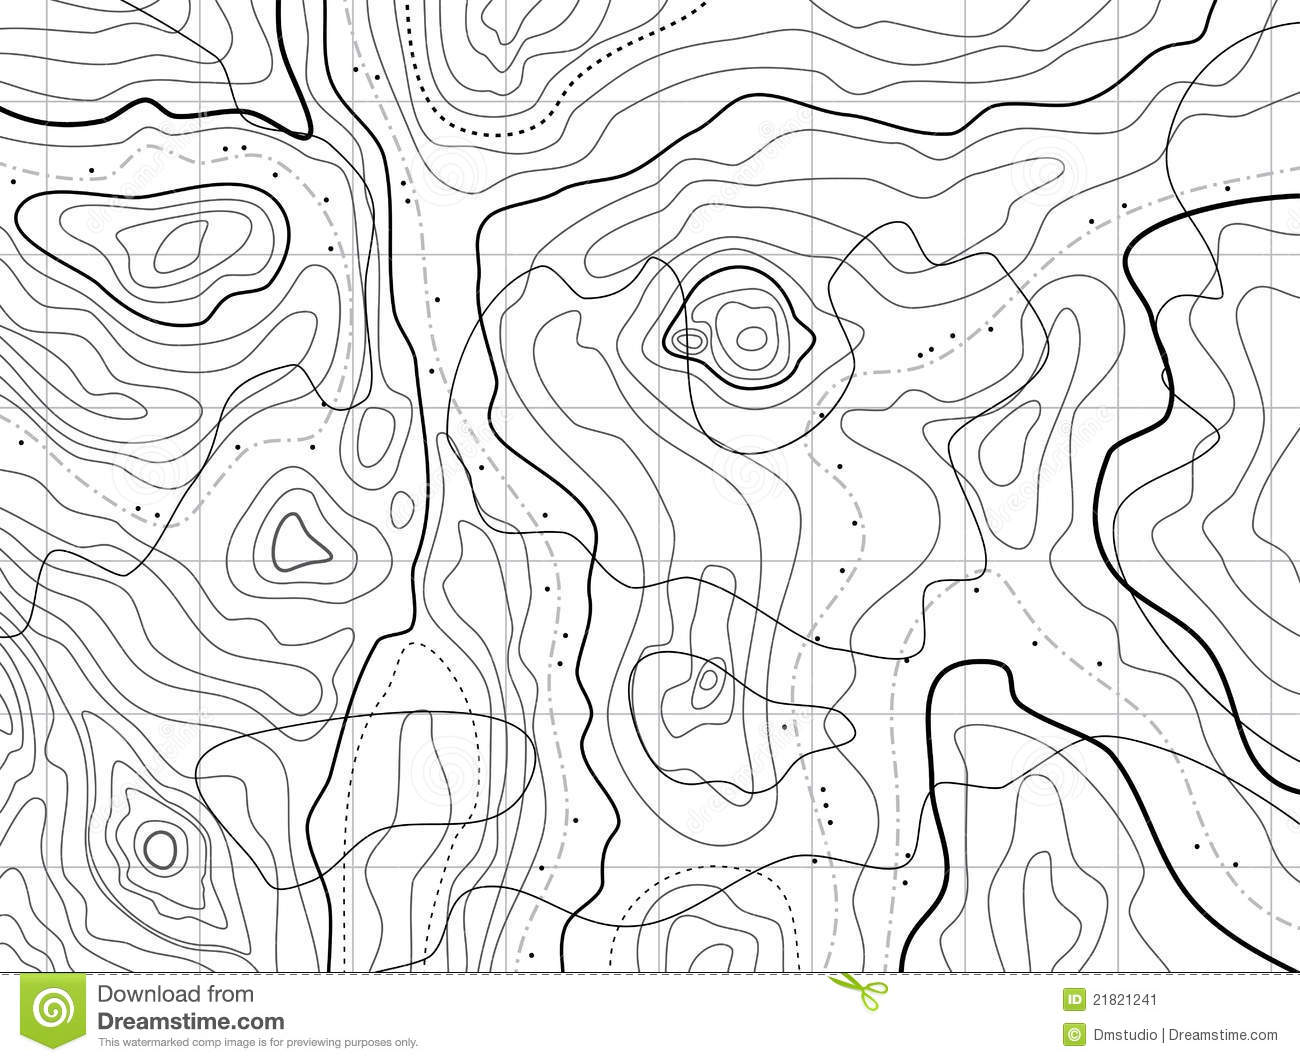 how to draw a cross section from a contour map